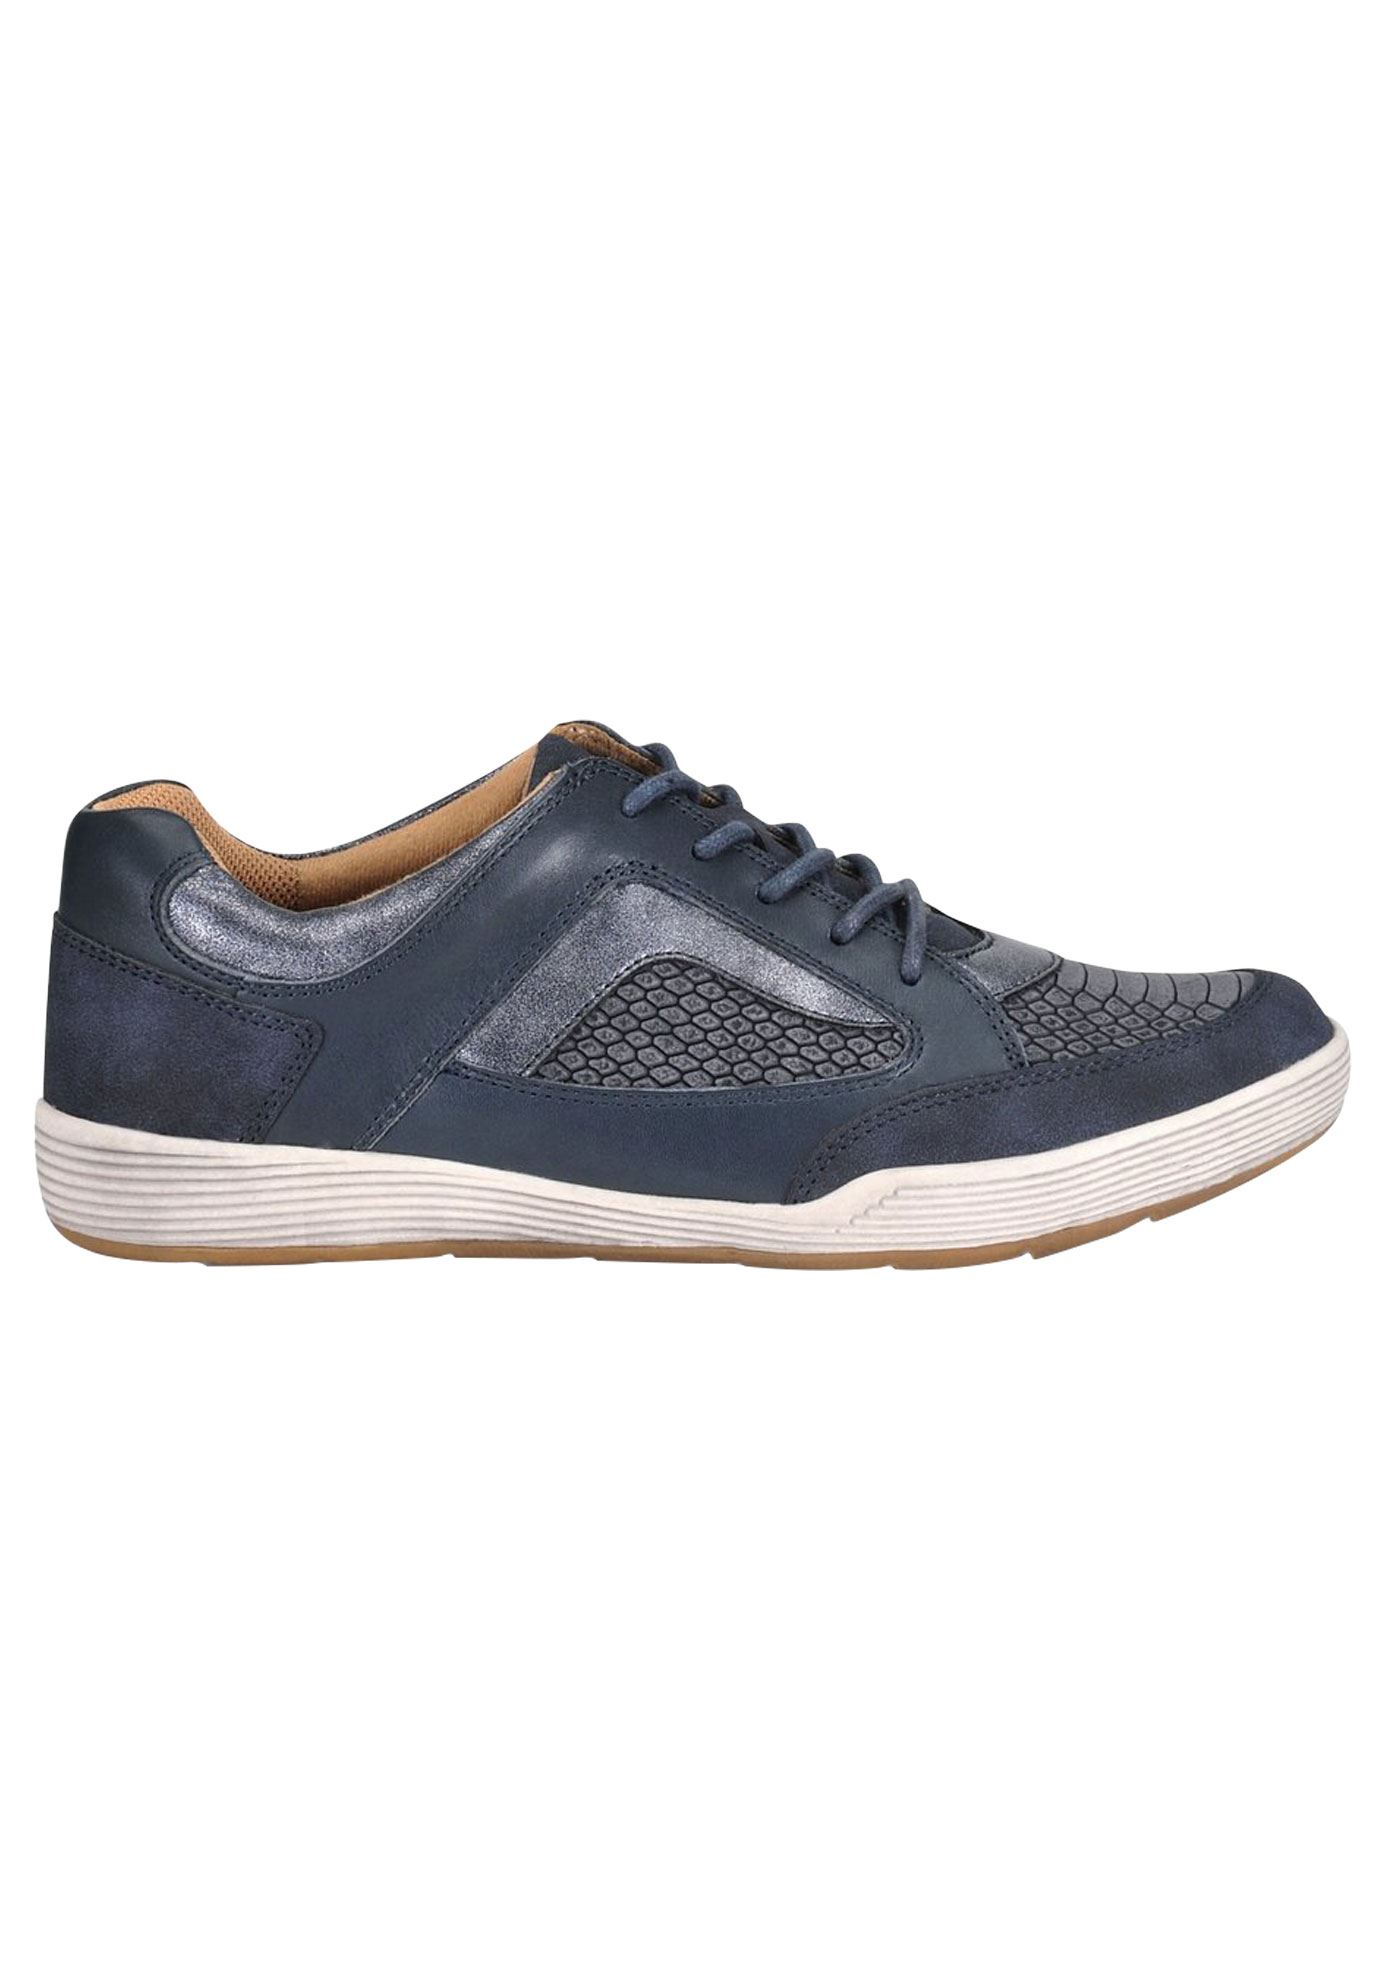 Lemont Sneakers by Comfortiva®,